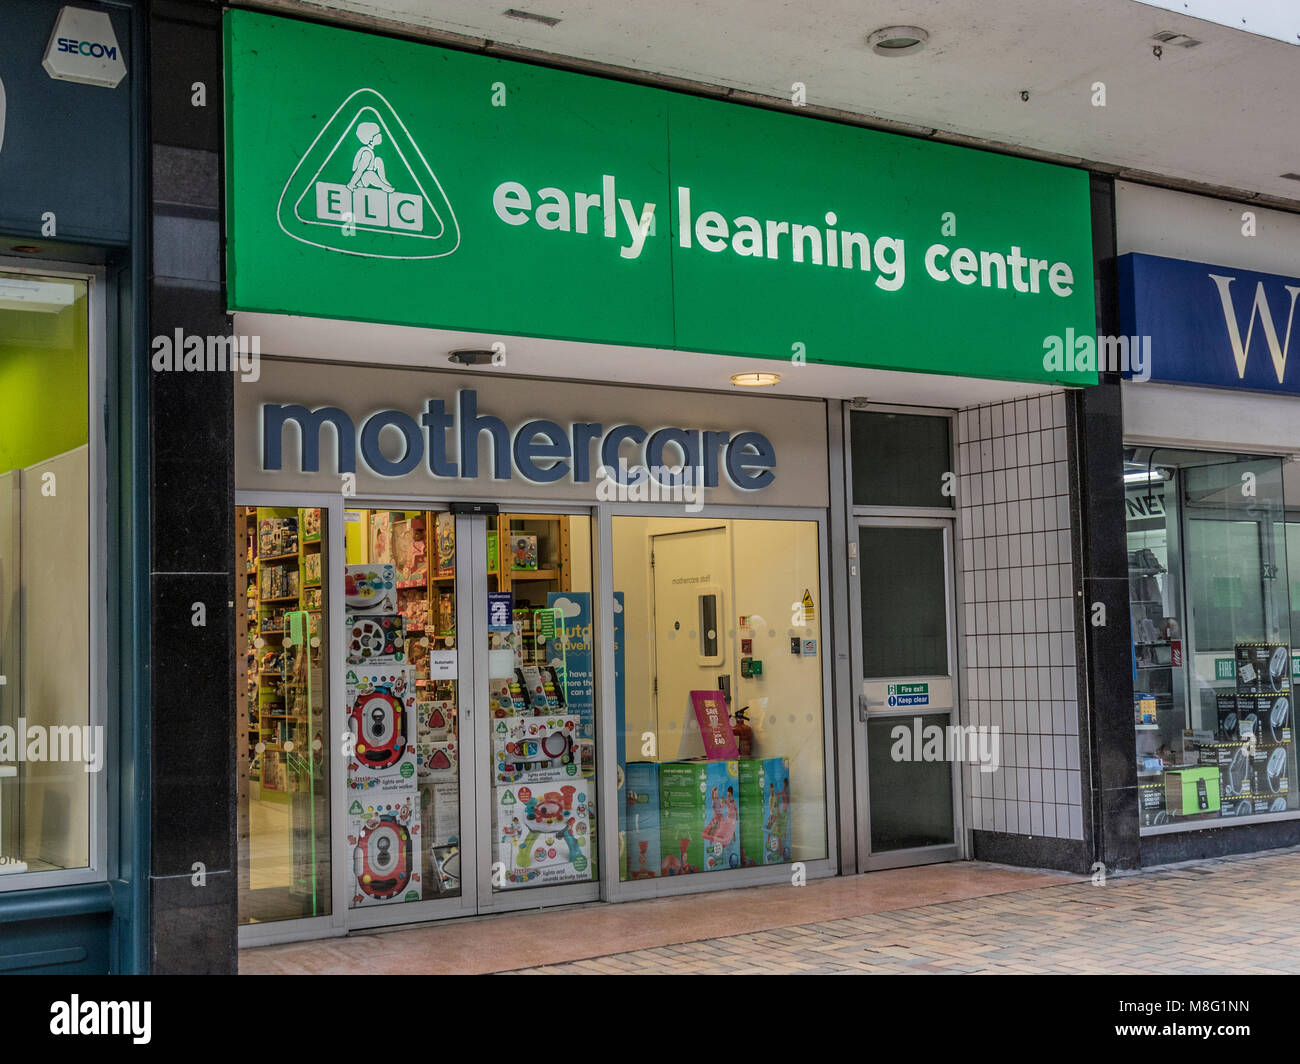 Mothercare, Early Learning Centre, Stockport Town Centre Shopping area, Merseyway - Stock Image